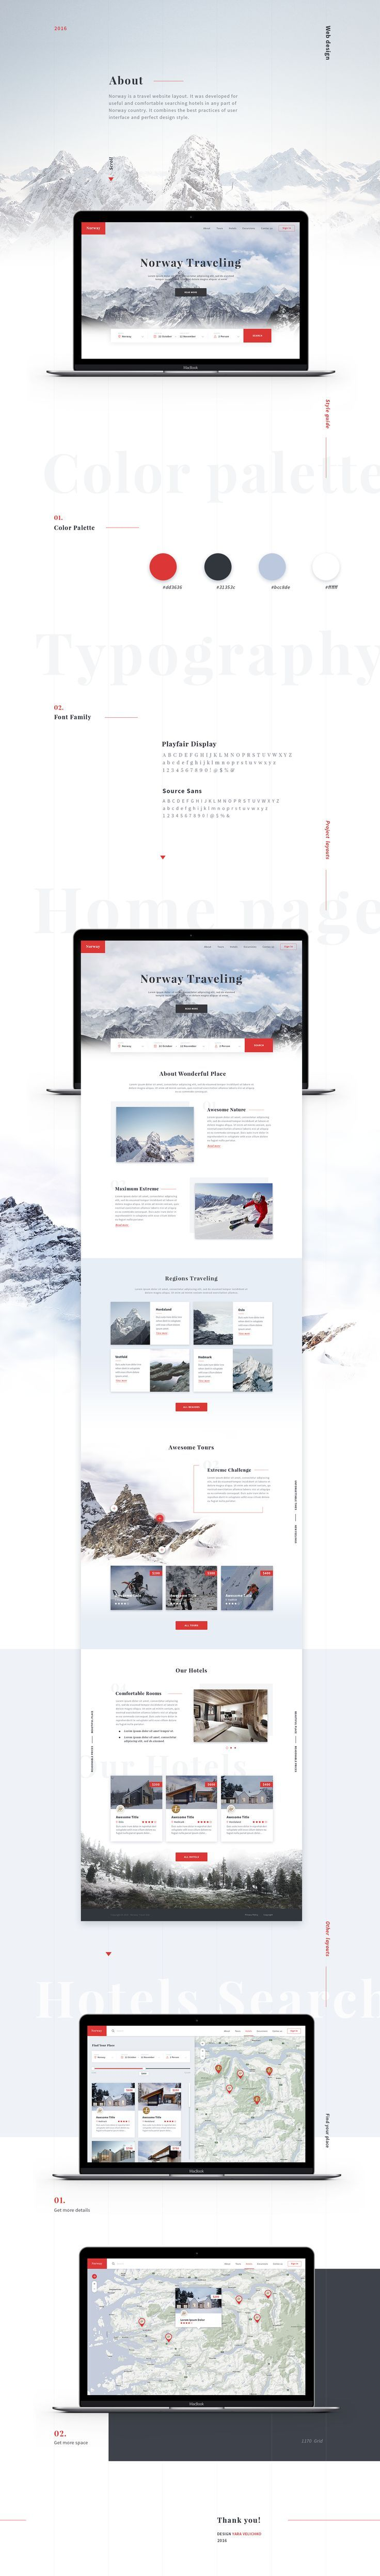 Norway is a travel website layout. It was developed for useful and comfortable searching hotels in any part of Norway country. It combines the best practices of user interface and perfect design style.